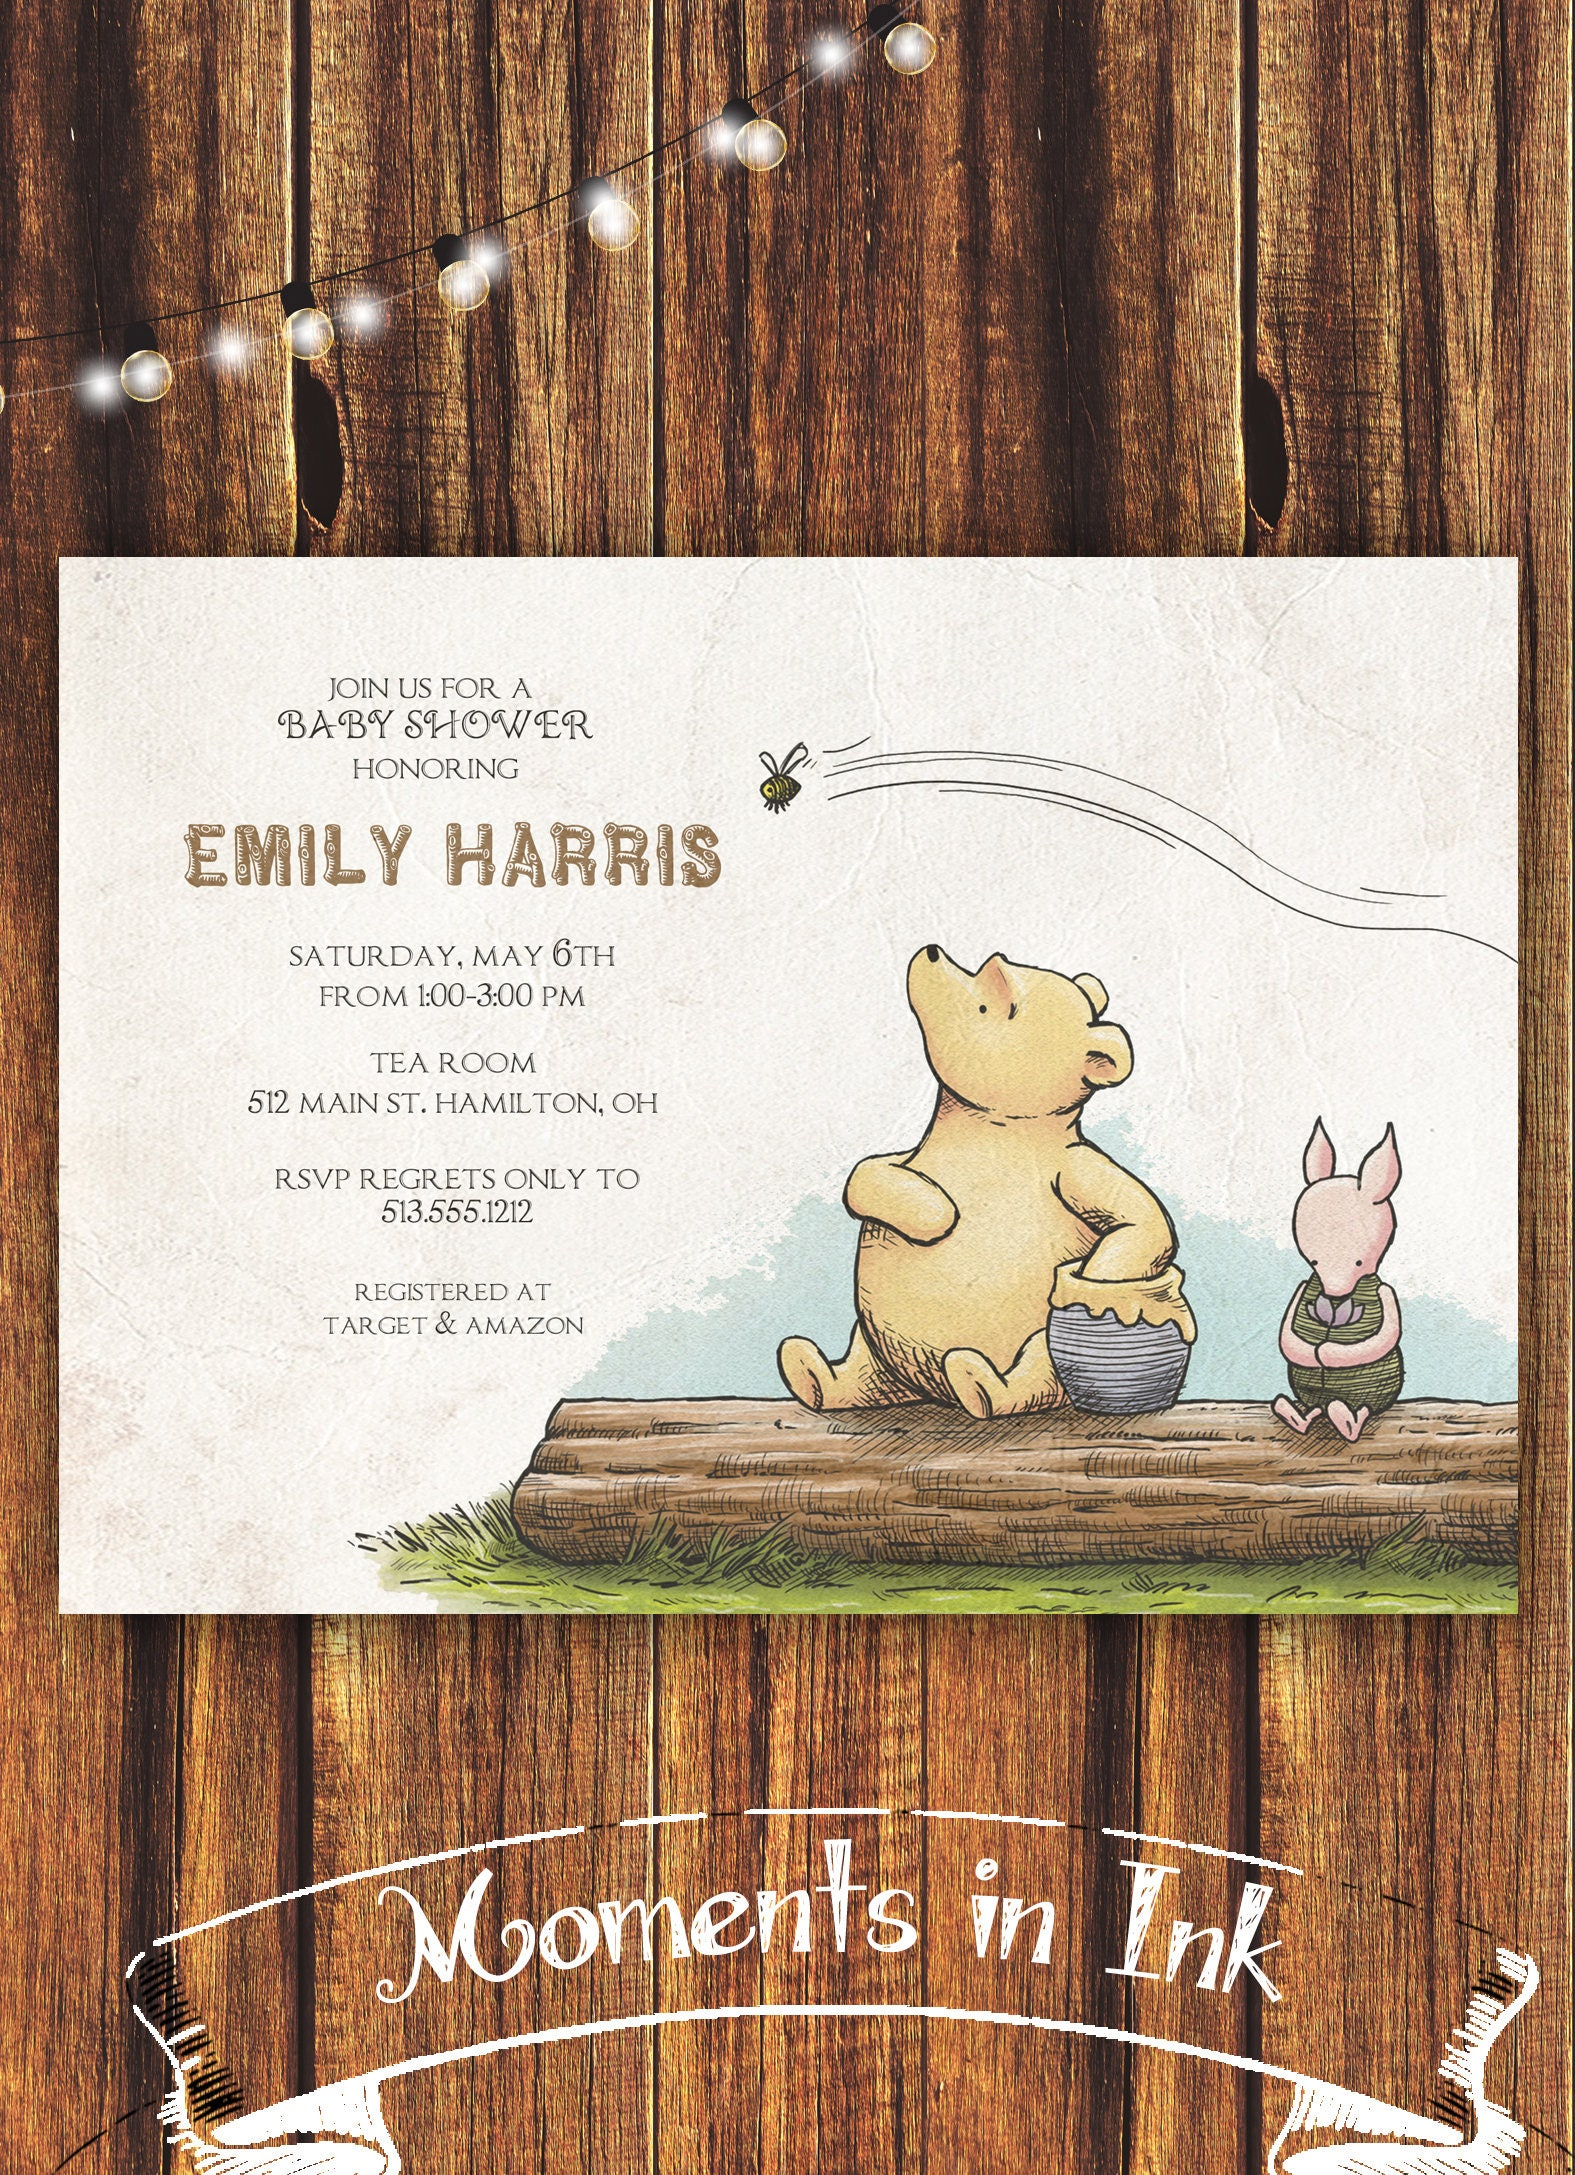 Classic Winnie the Pooh Baby Shower Invitation//FREE SHIPPING | Etsy